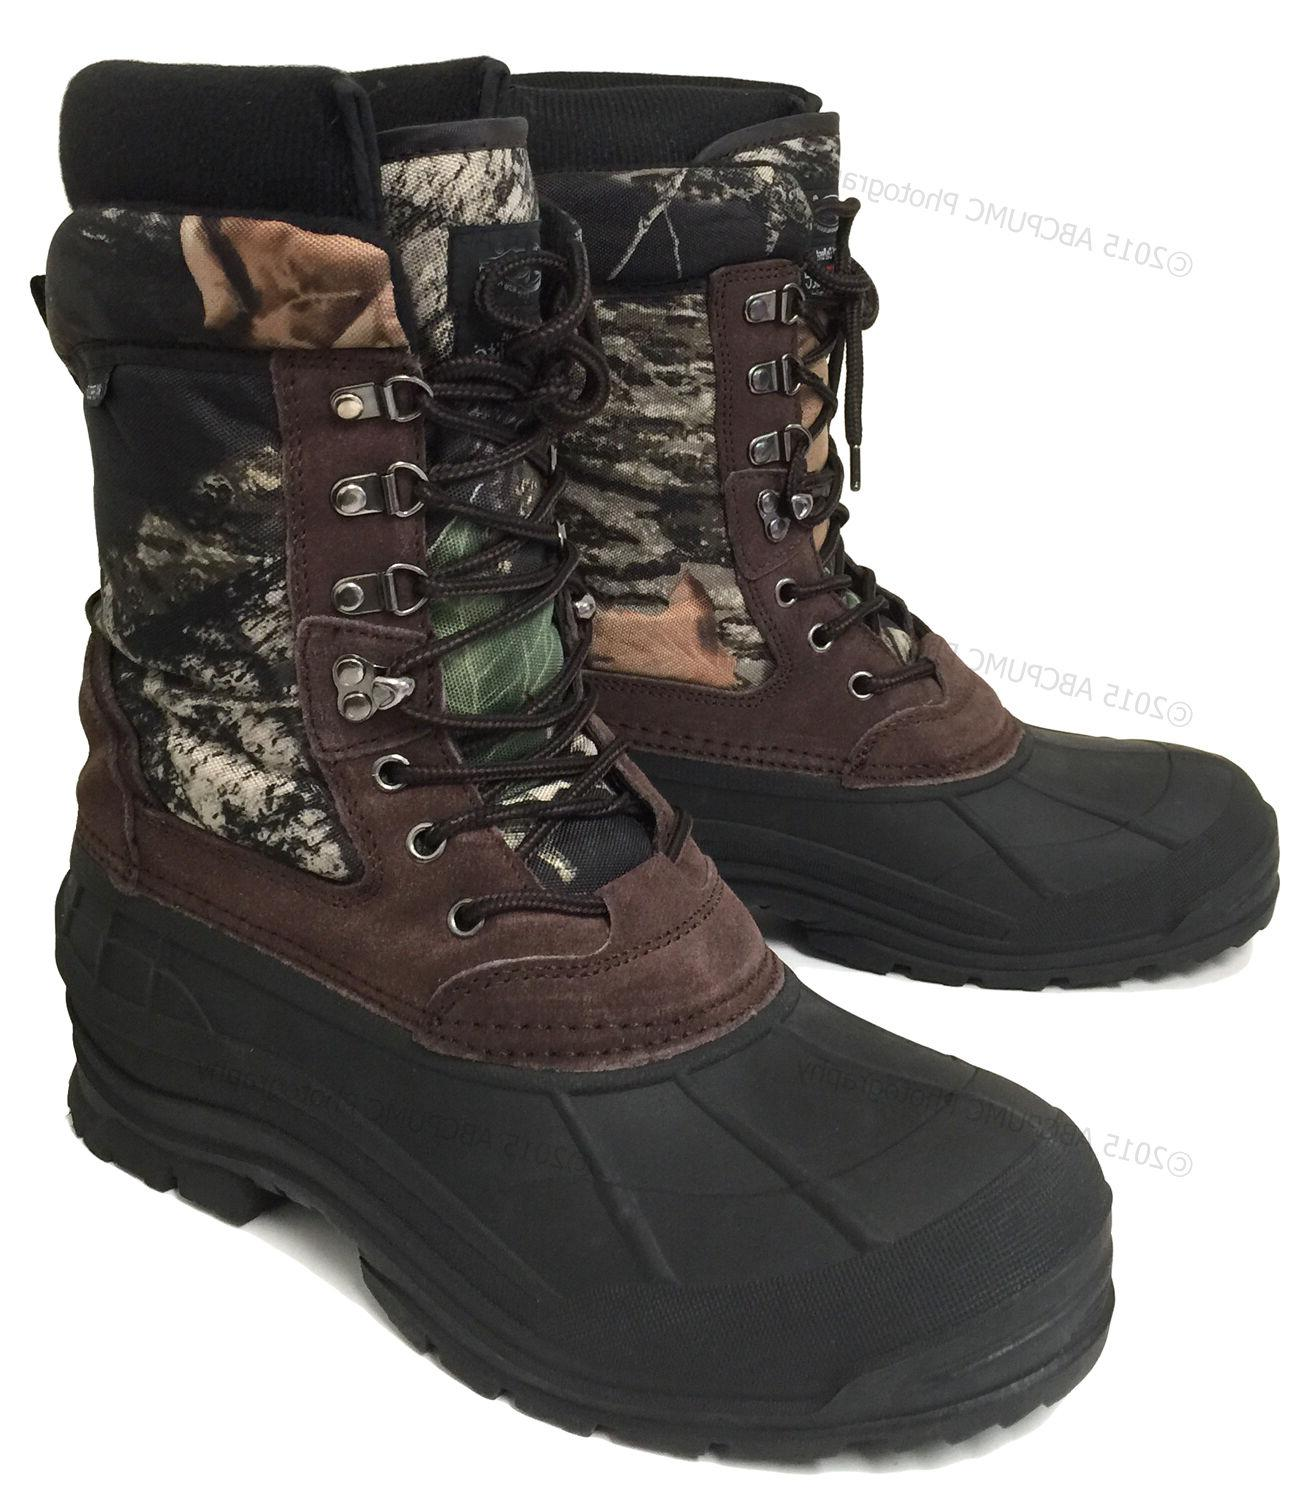 "New Winter Snow Boots 10"" Waterproof Hunting"